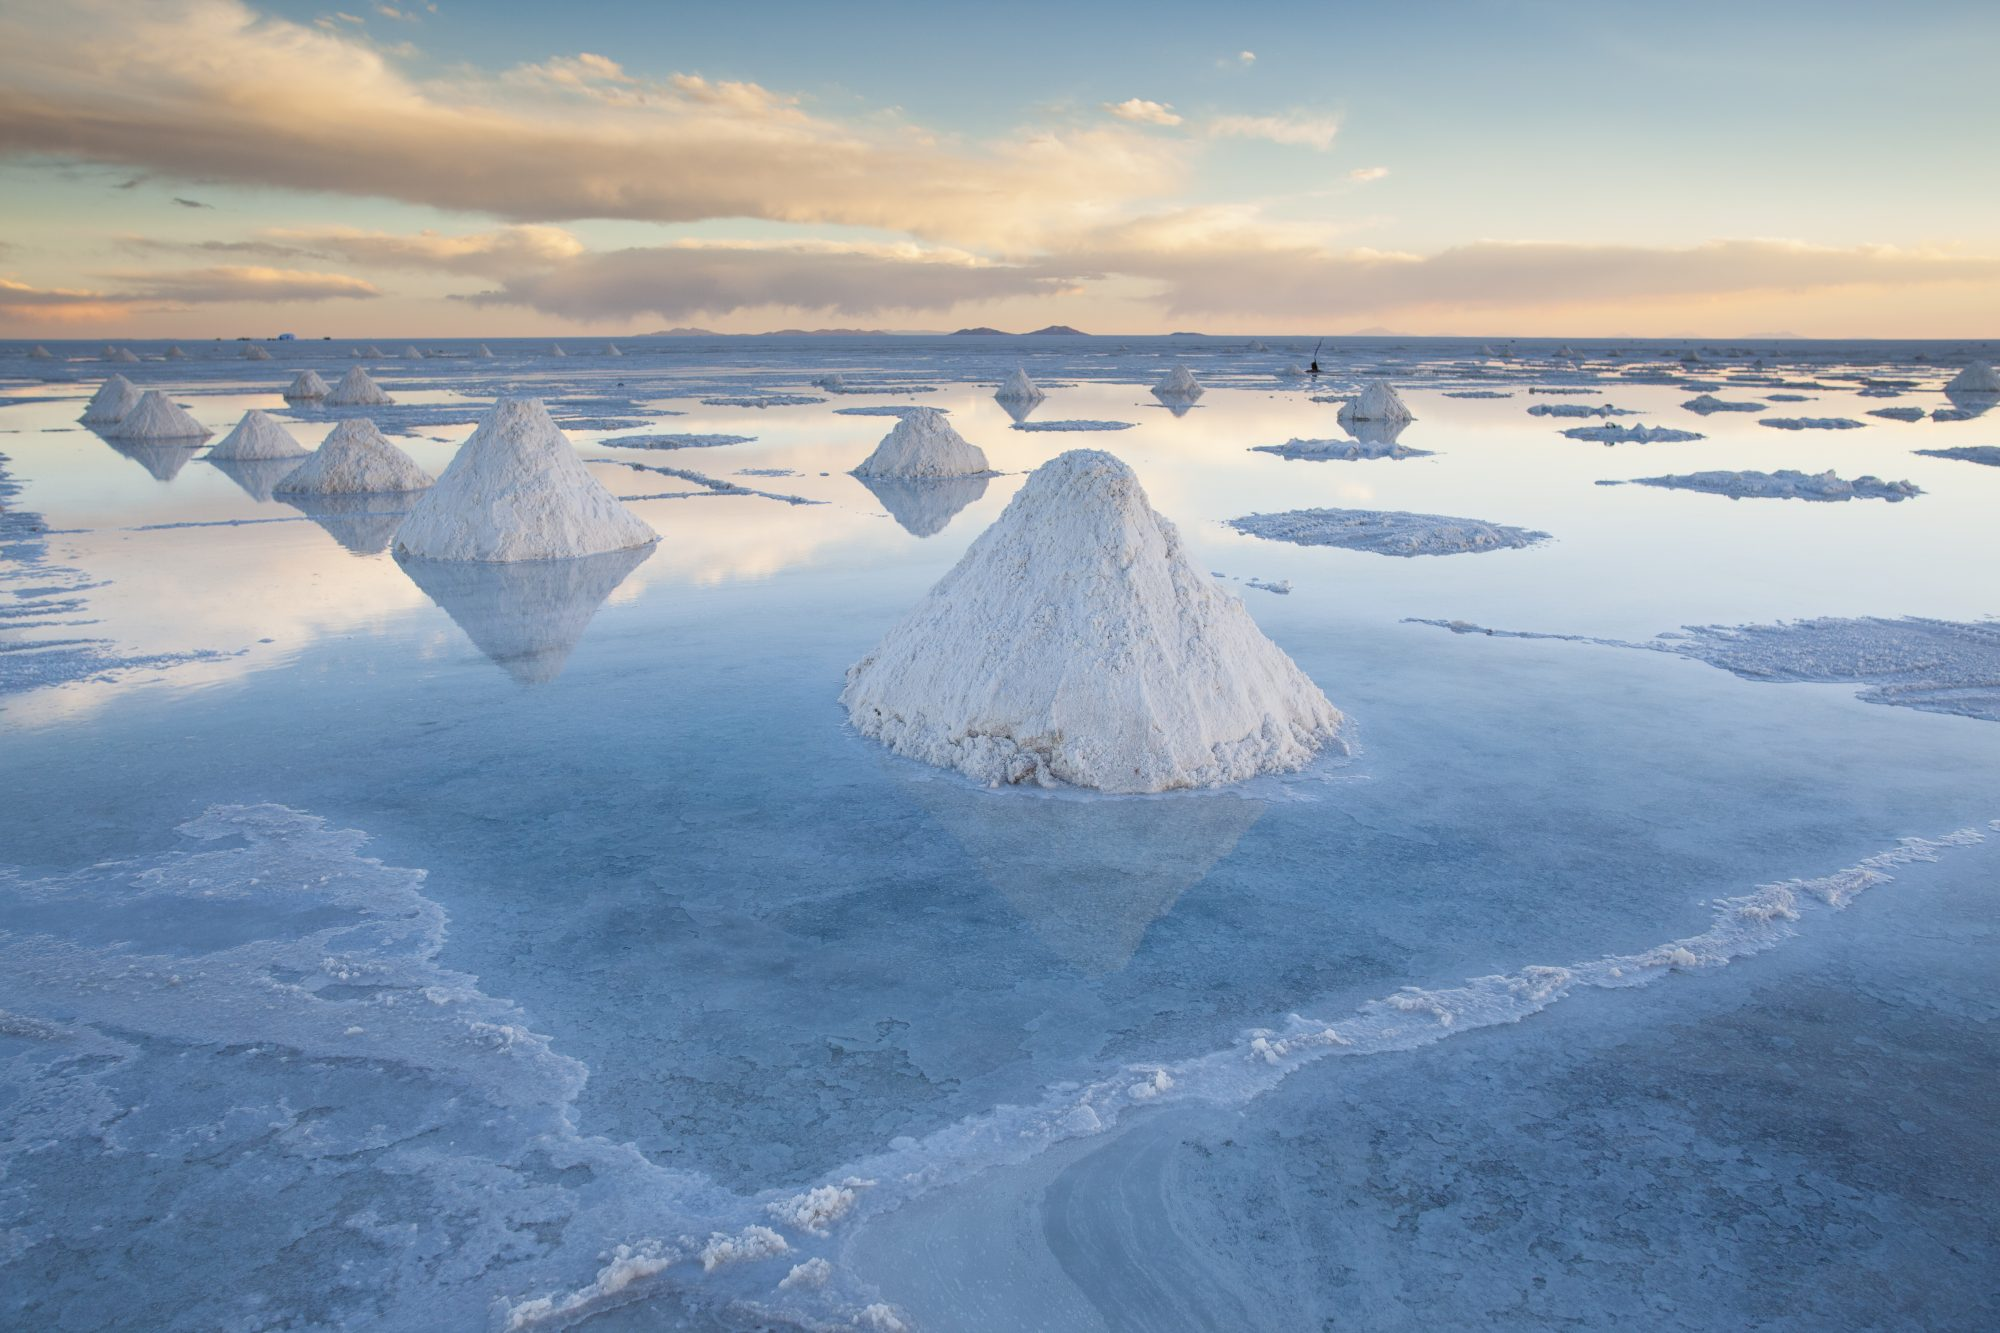 Bolivia-Salt-Flats-FT-Blog06242019.jpg